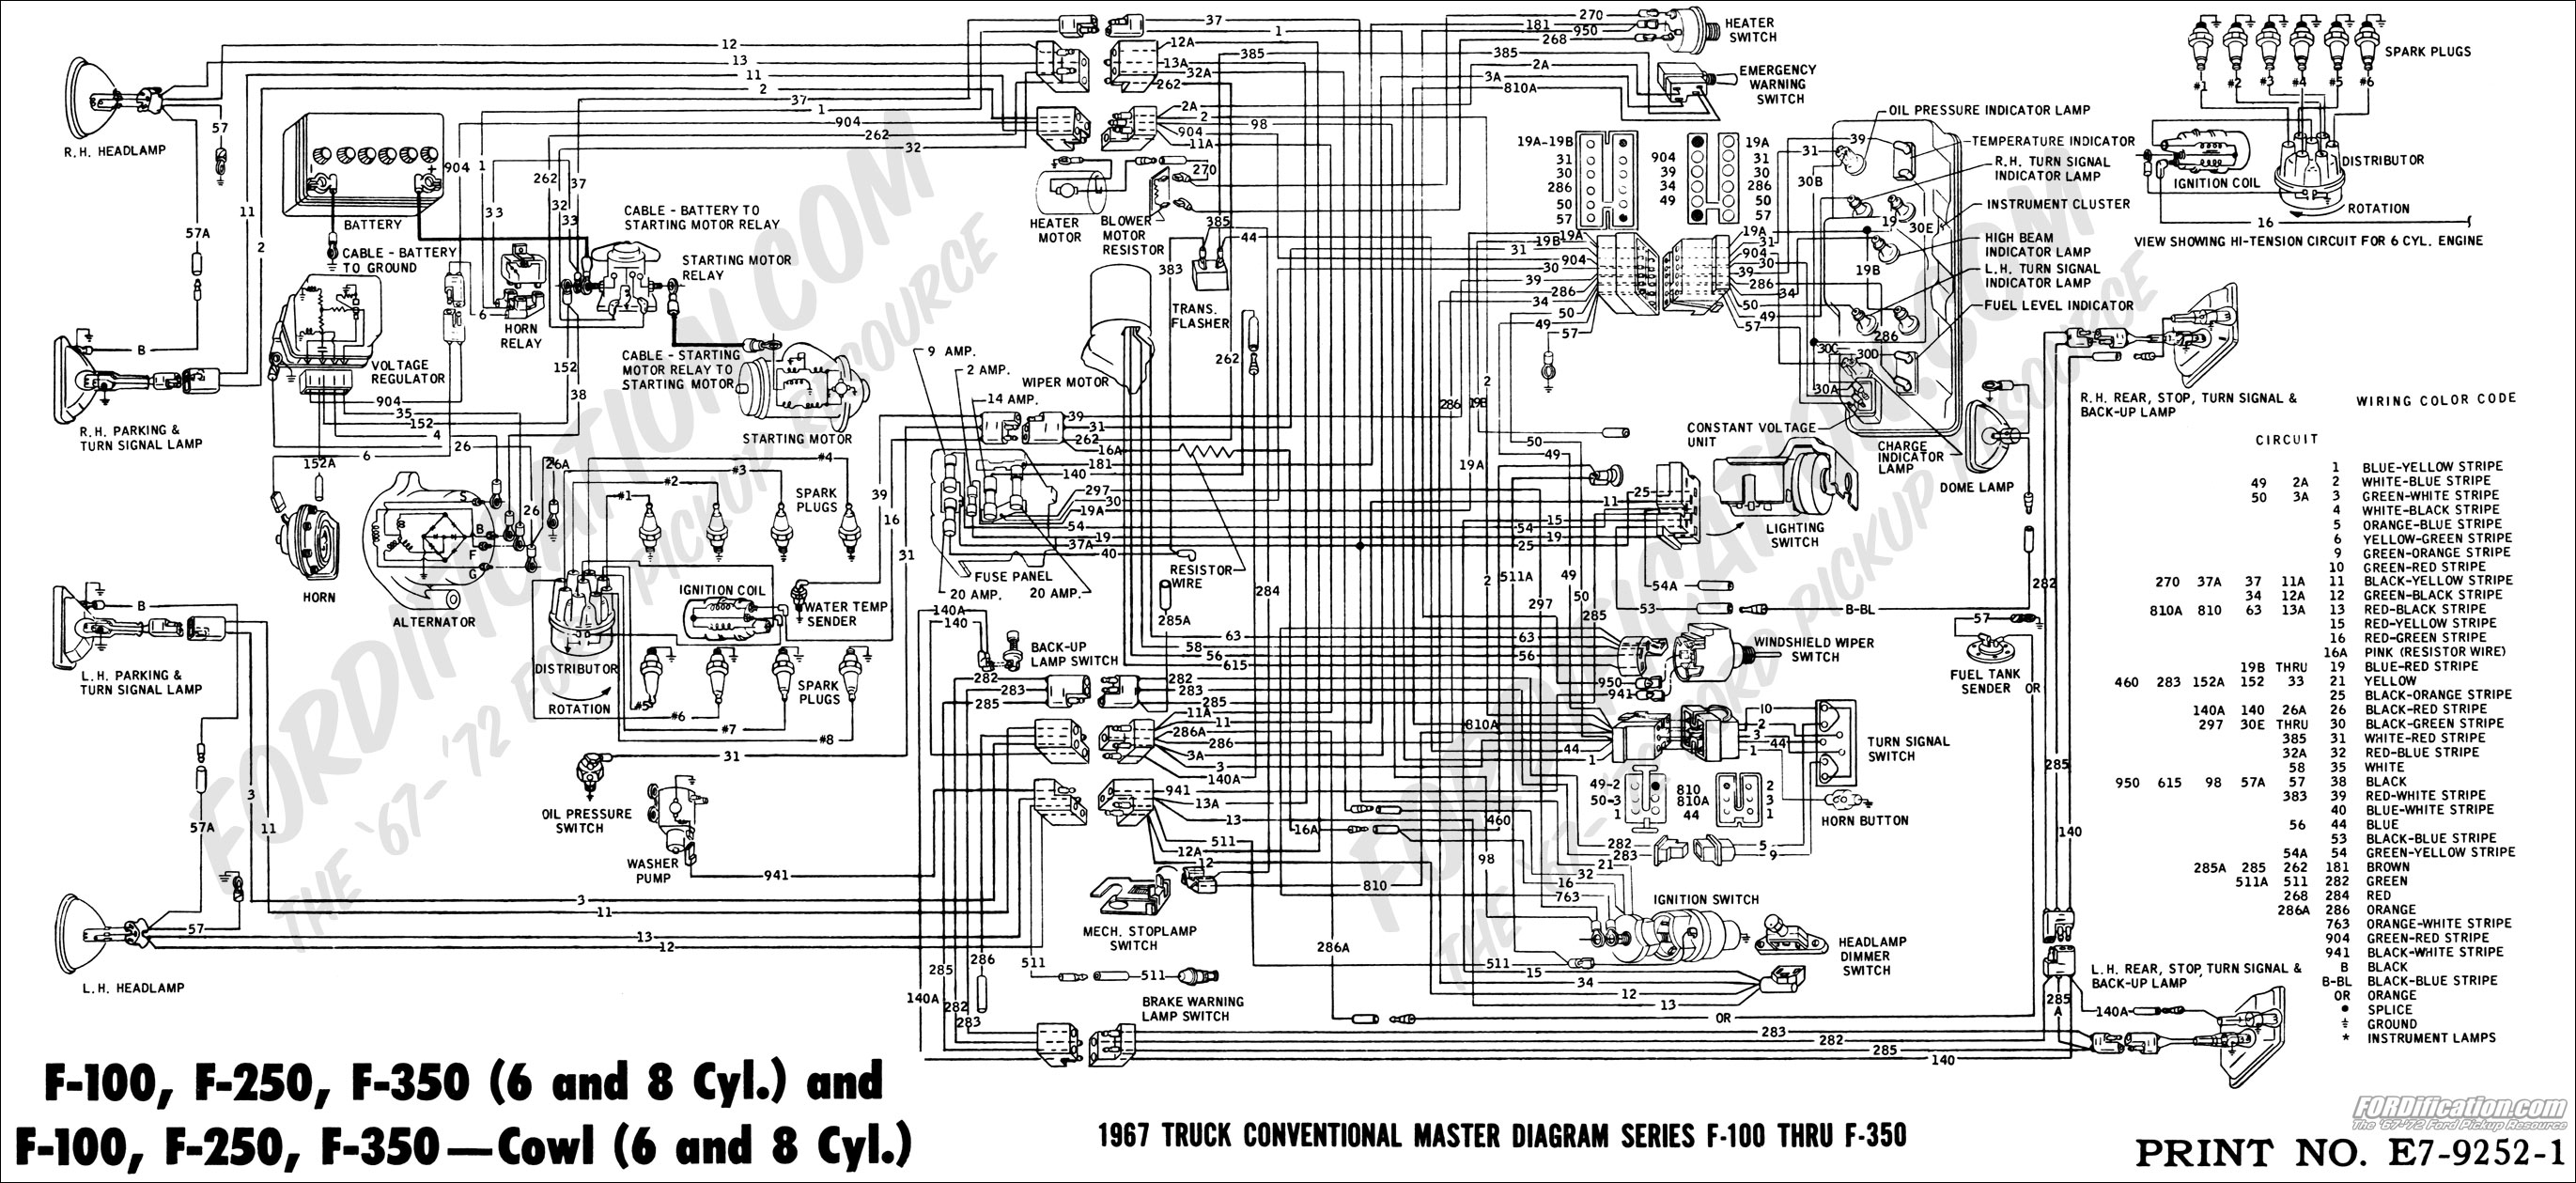 67masterdiagram 1999 ford f150 wiring diagram 1999 ford f150 headlight \u2022 free 1999 ford f250 wiring diagram lt frt door at alyssarenee.co